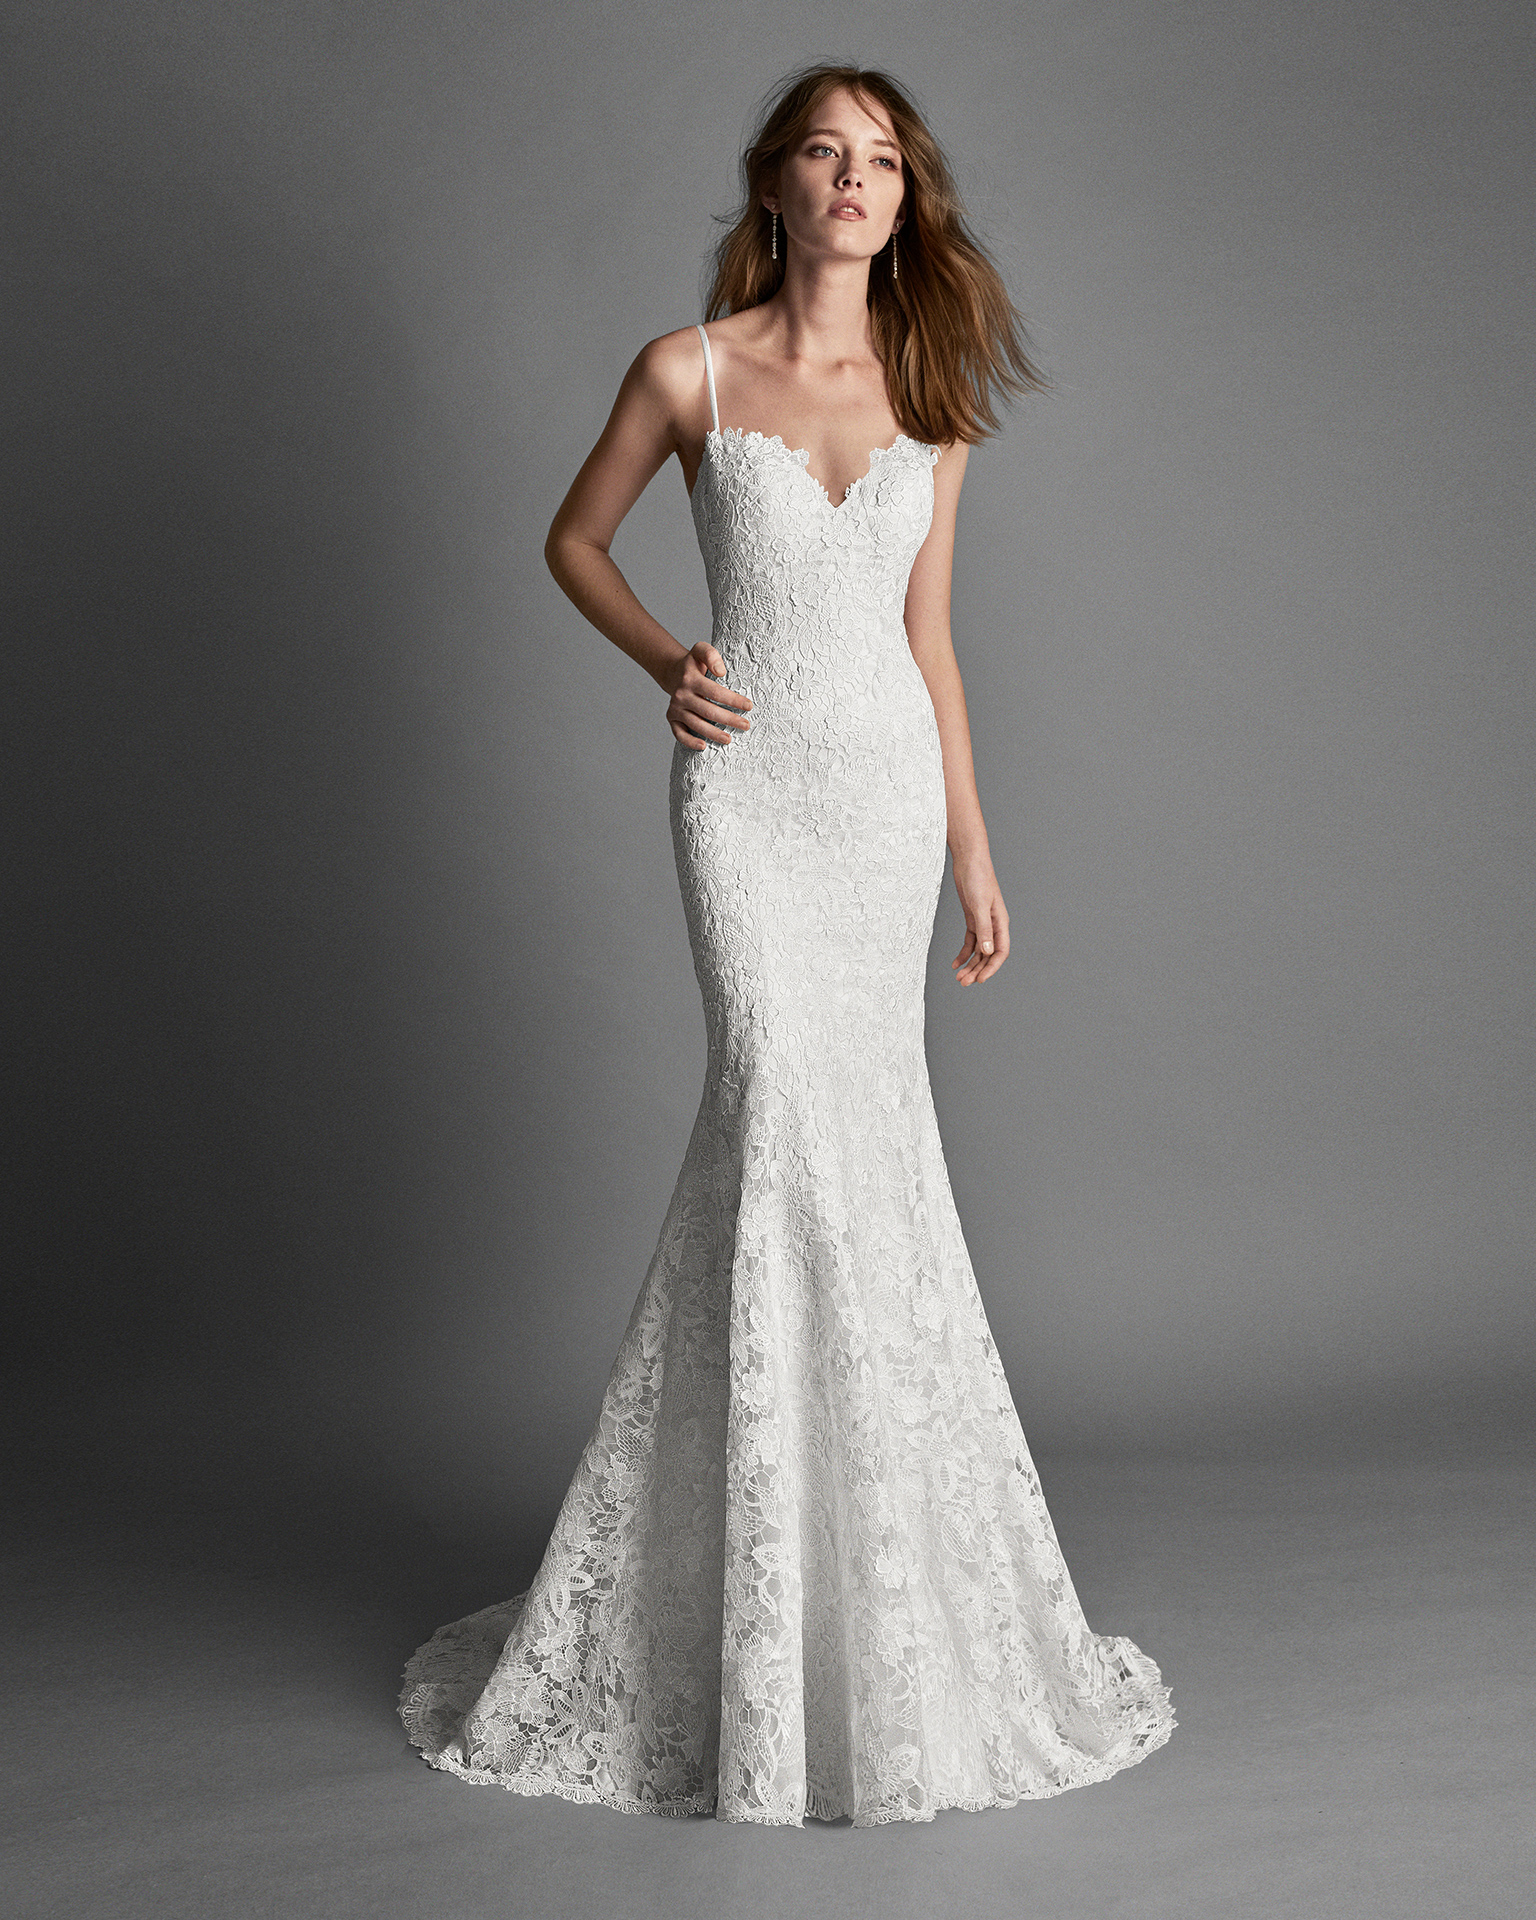 Mermaid-style guipure lace wedding dress with low back.